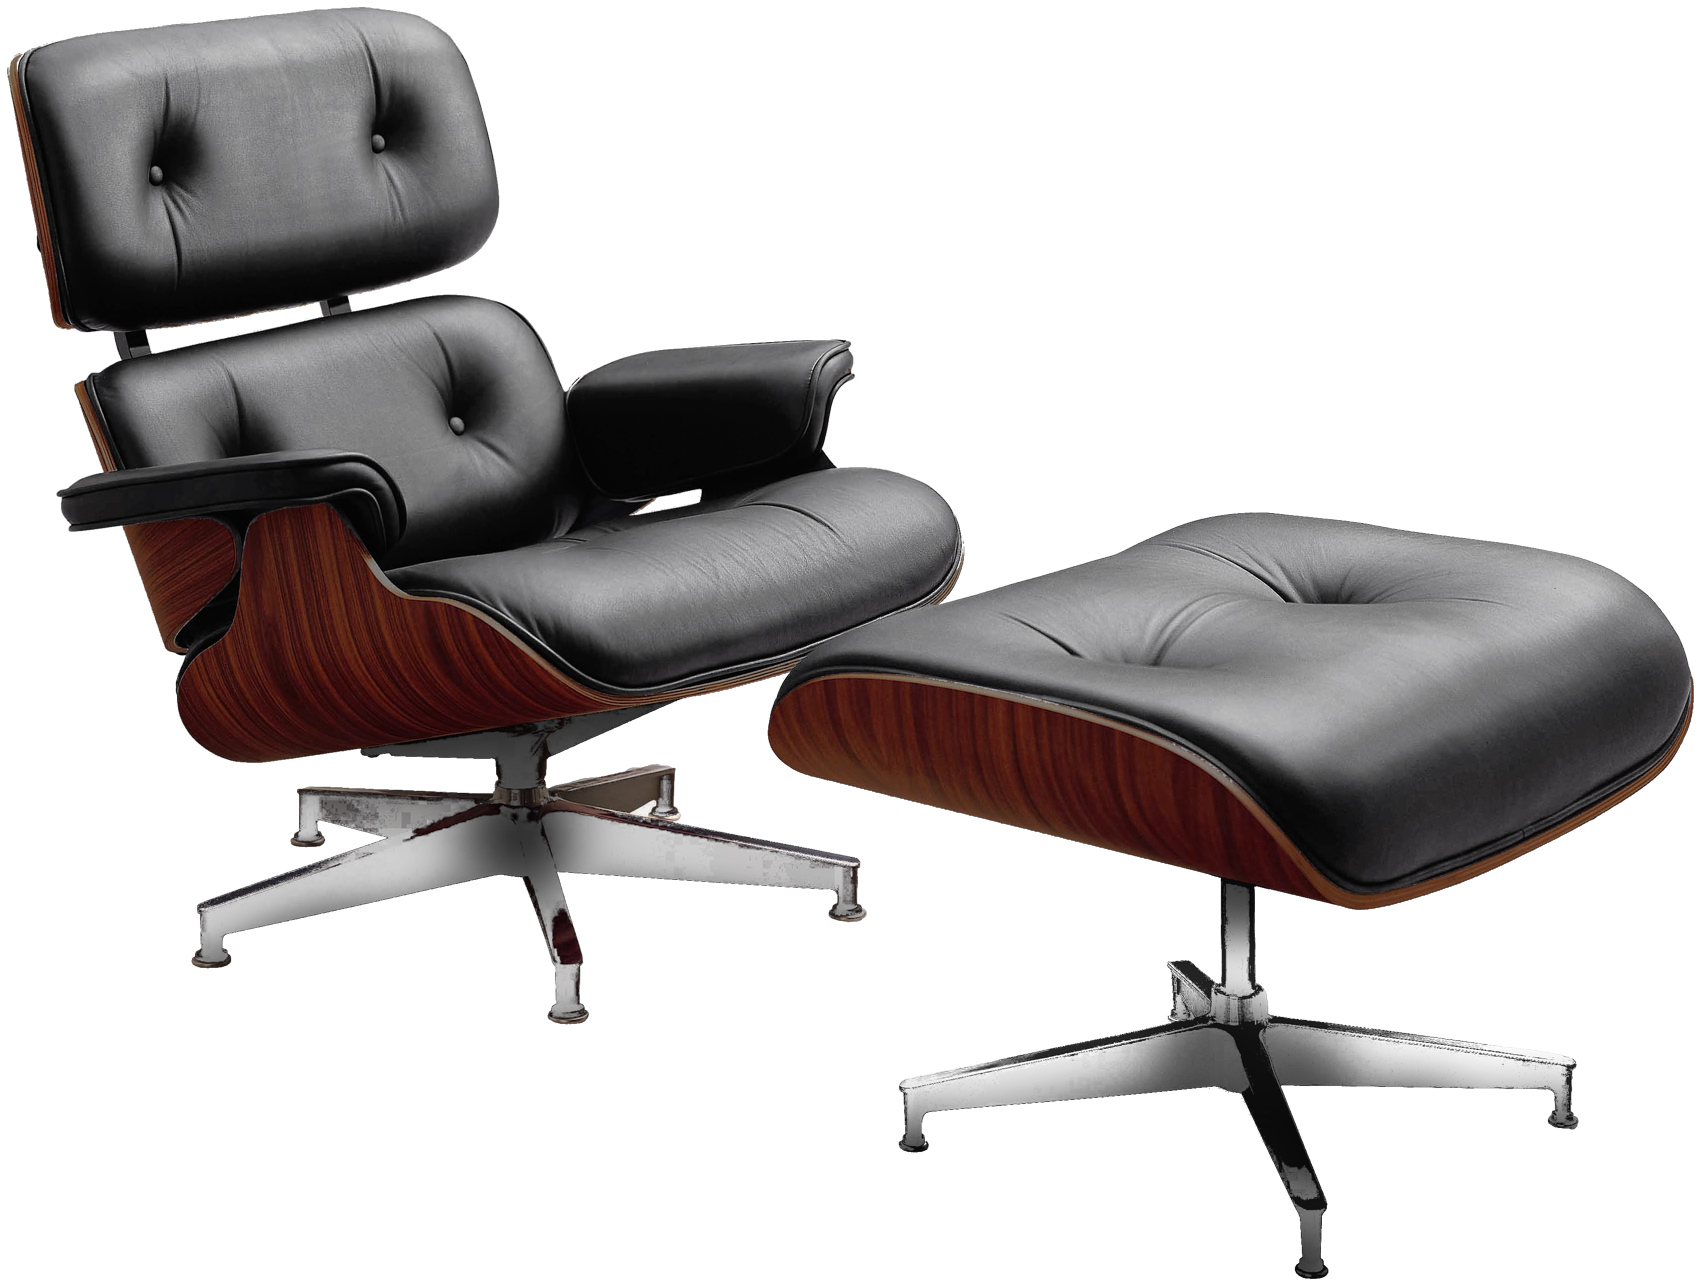 Captivating Charles Eames Style Leather Lounge Chair | Specialist Furniture Contracts